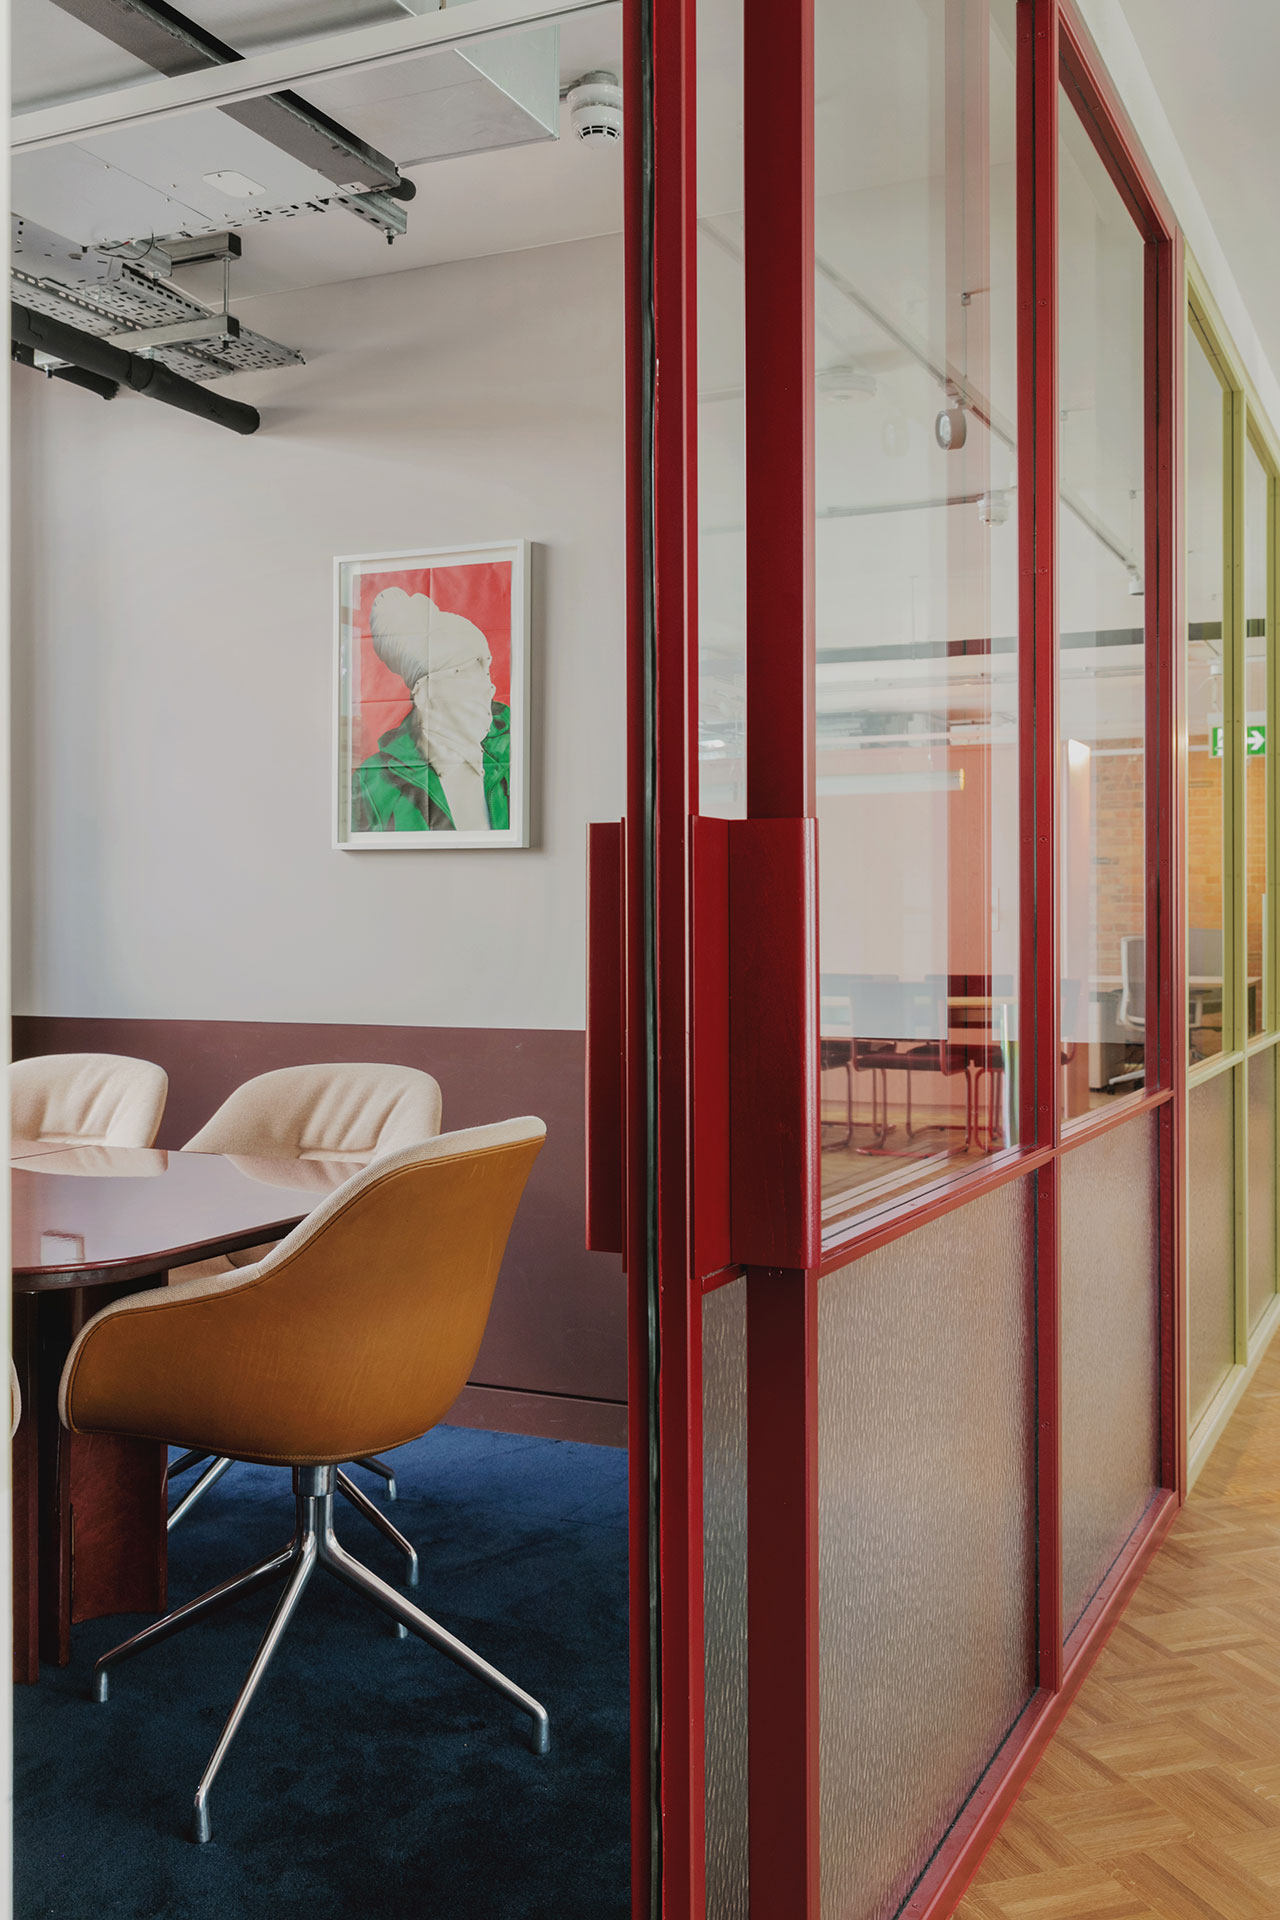 Media offices in London by Daytrip studio. Photography byMariell Lind Hansen.